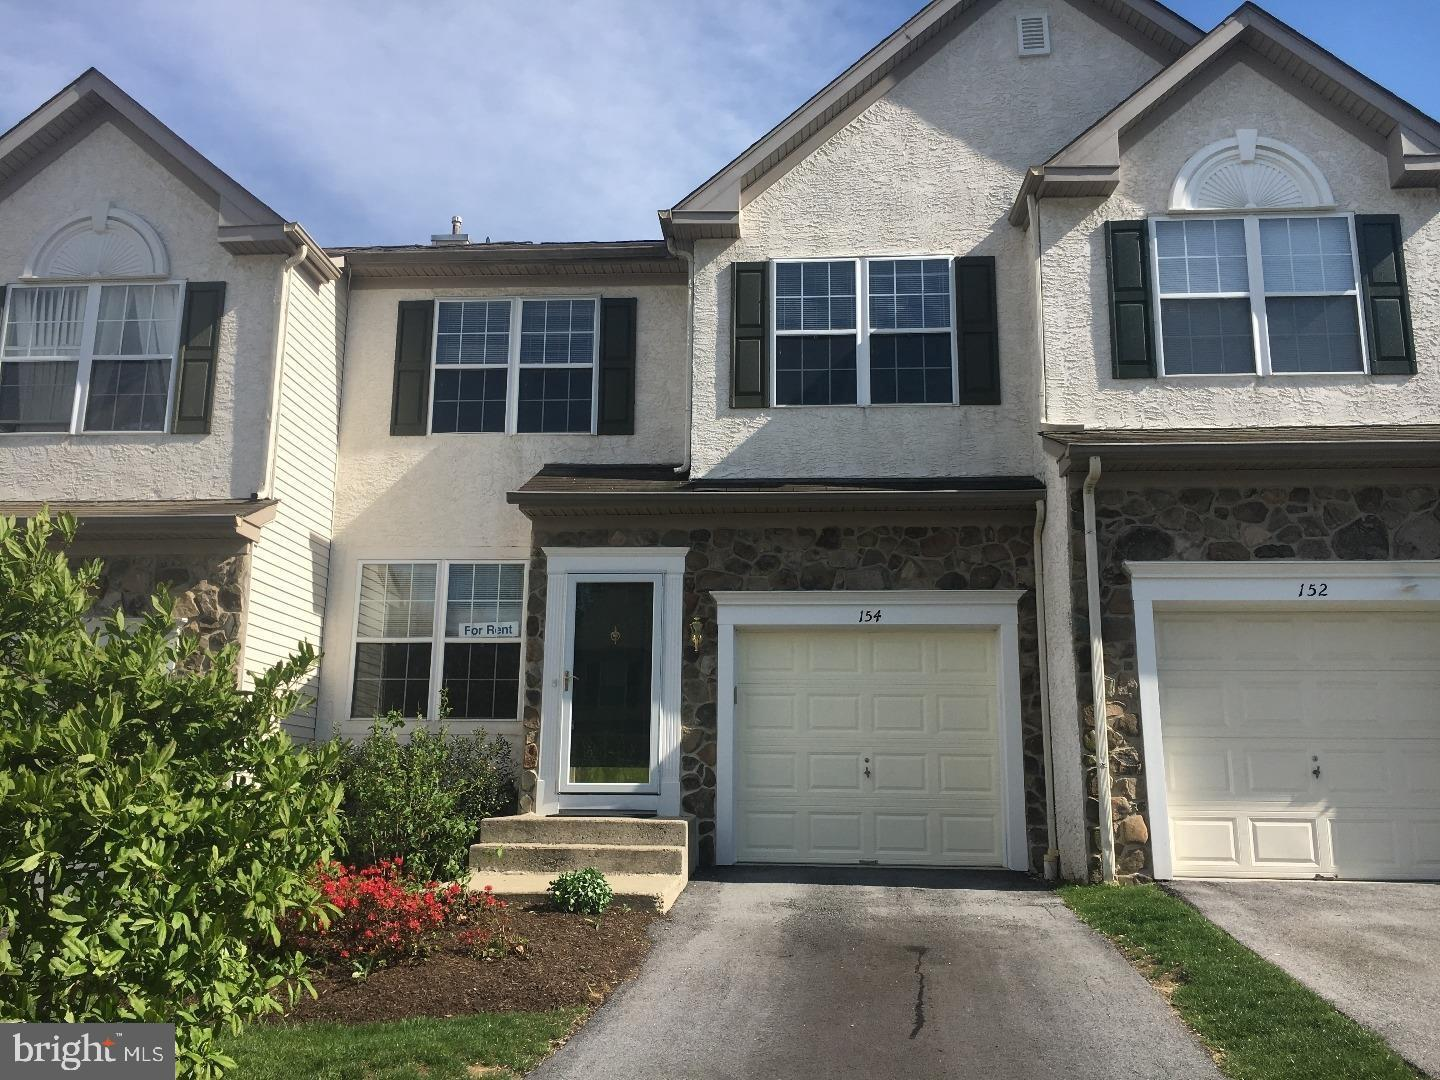 154 Mountain View Drive West Chester, PA 19380